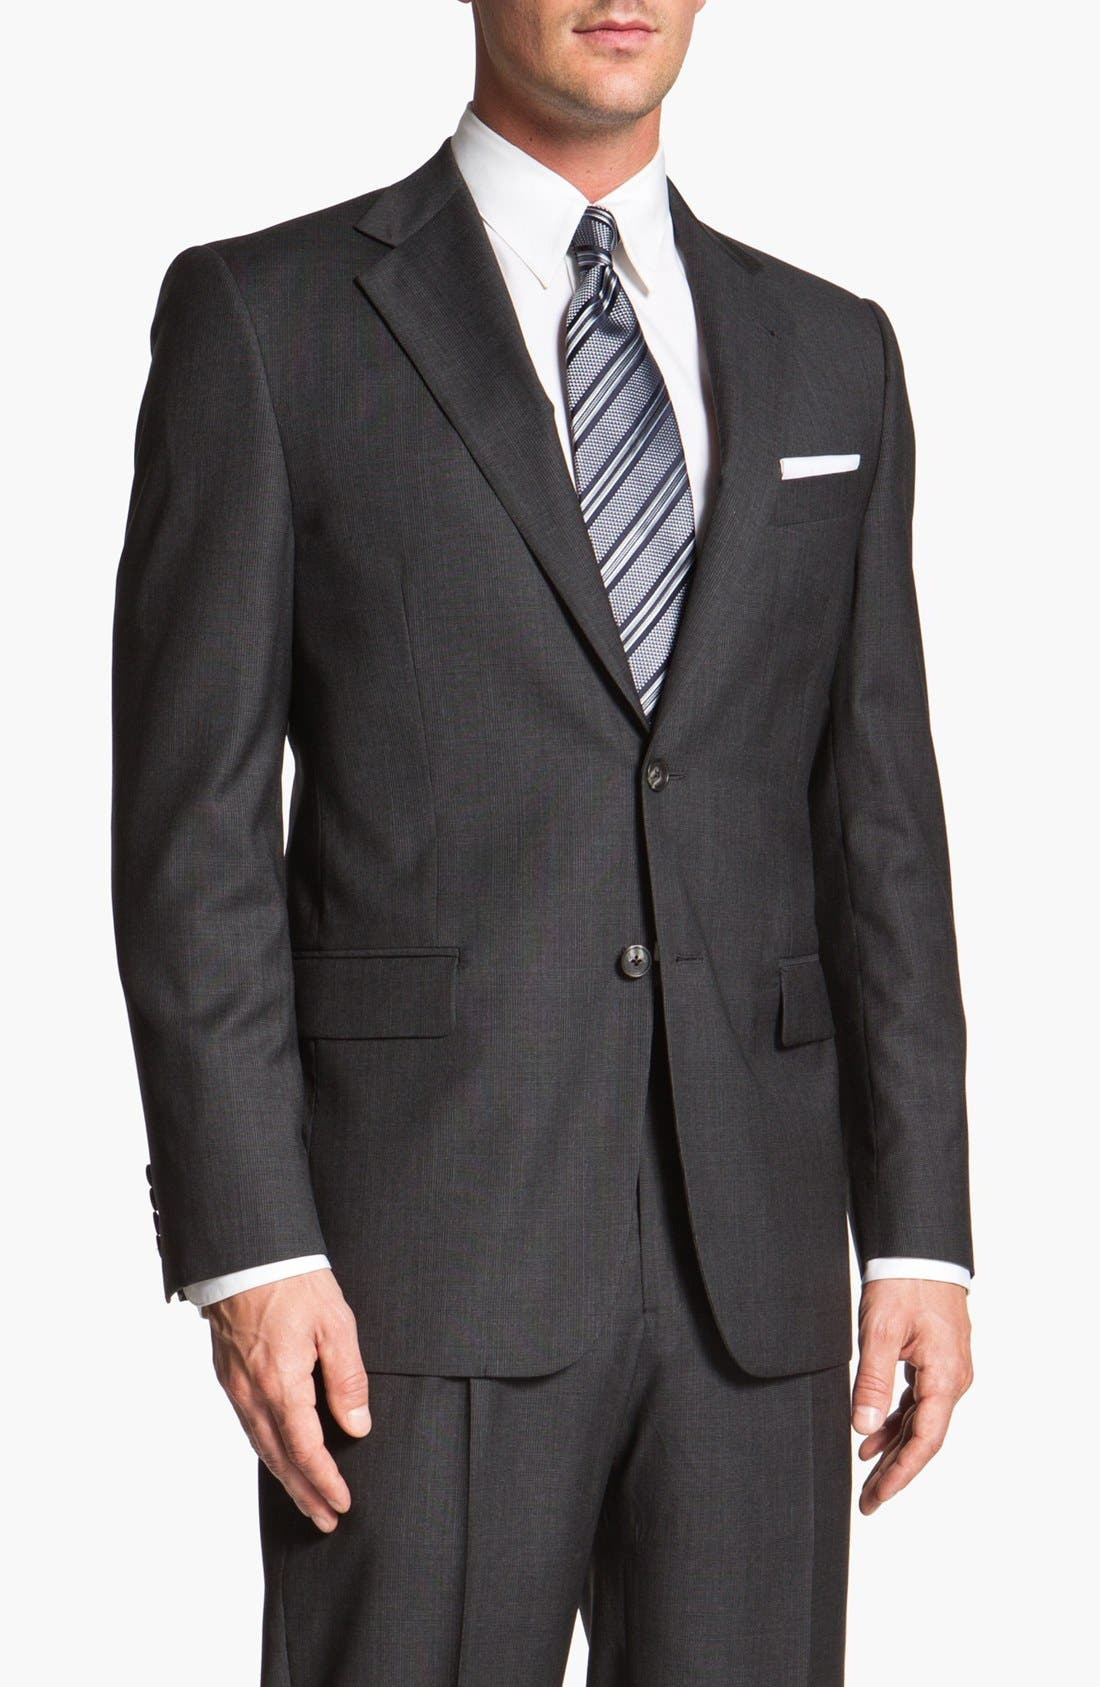 Alternate Image 1 Selected - Joseph Abboud 'Signature Silver' Plaid Wool Suit (Online Only)